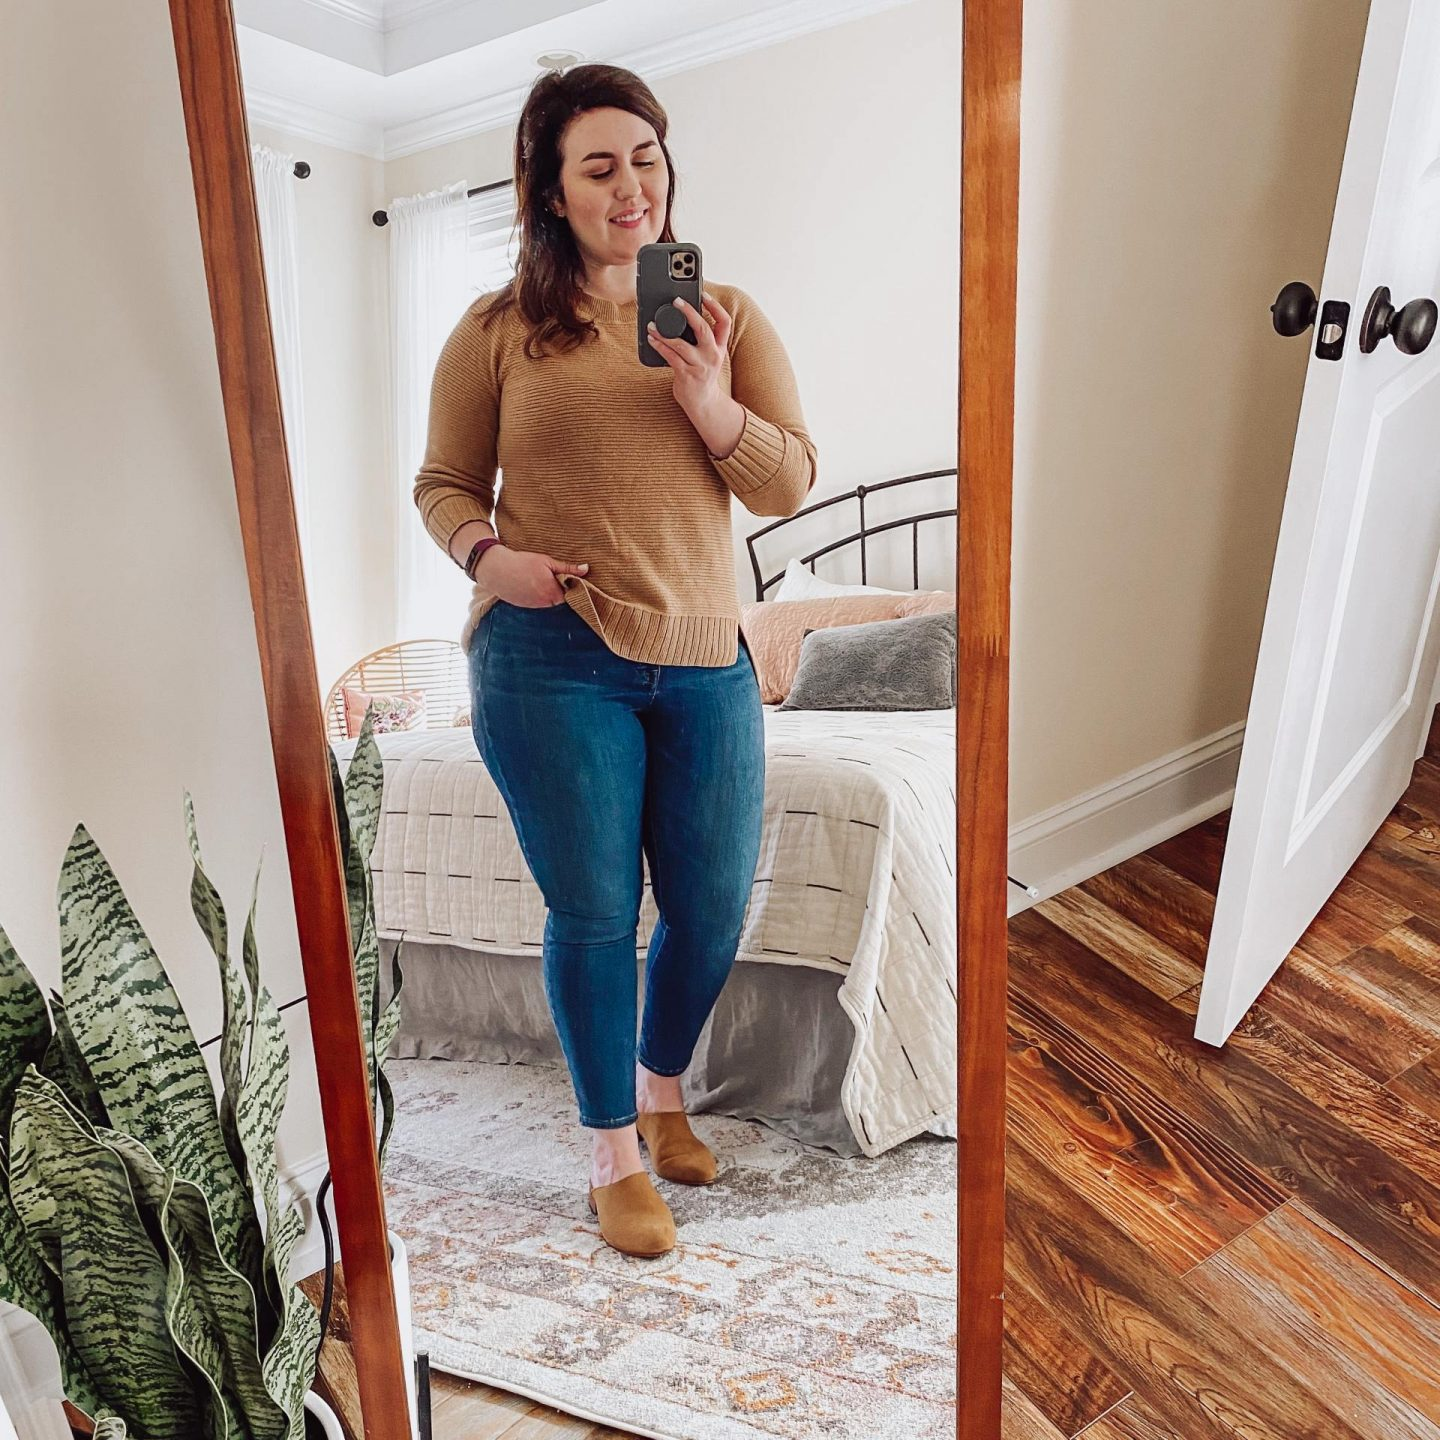 NC blogger Rebecca Lately shares her favorite Nisolo shoes. This post features a variety of shoes from the ethical shoe brand.